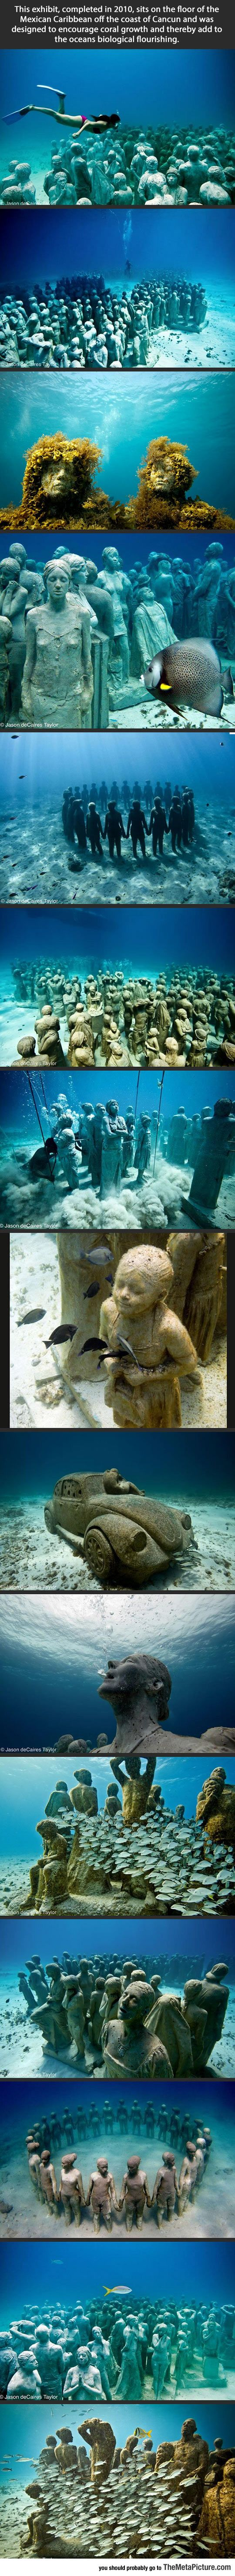 Awesome Underwater Museum - The Meta Picture